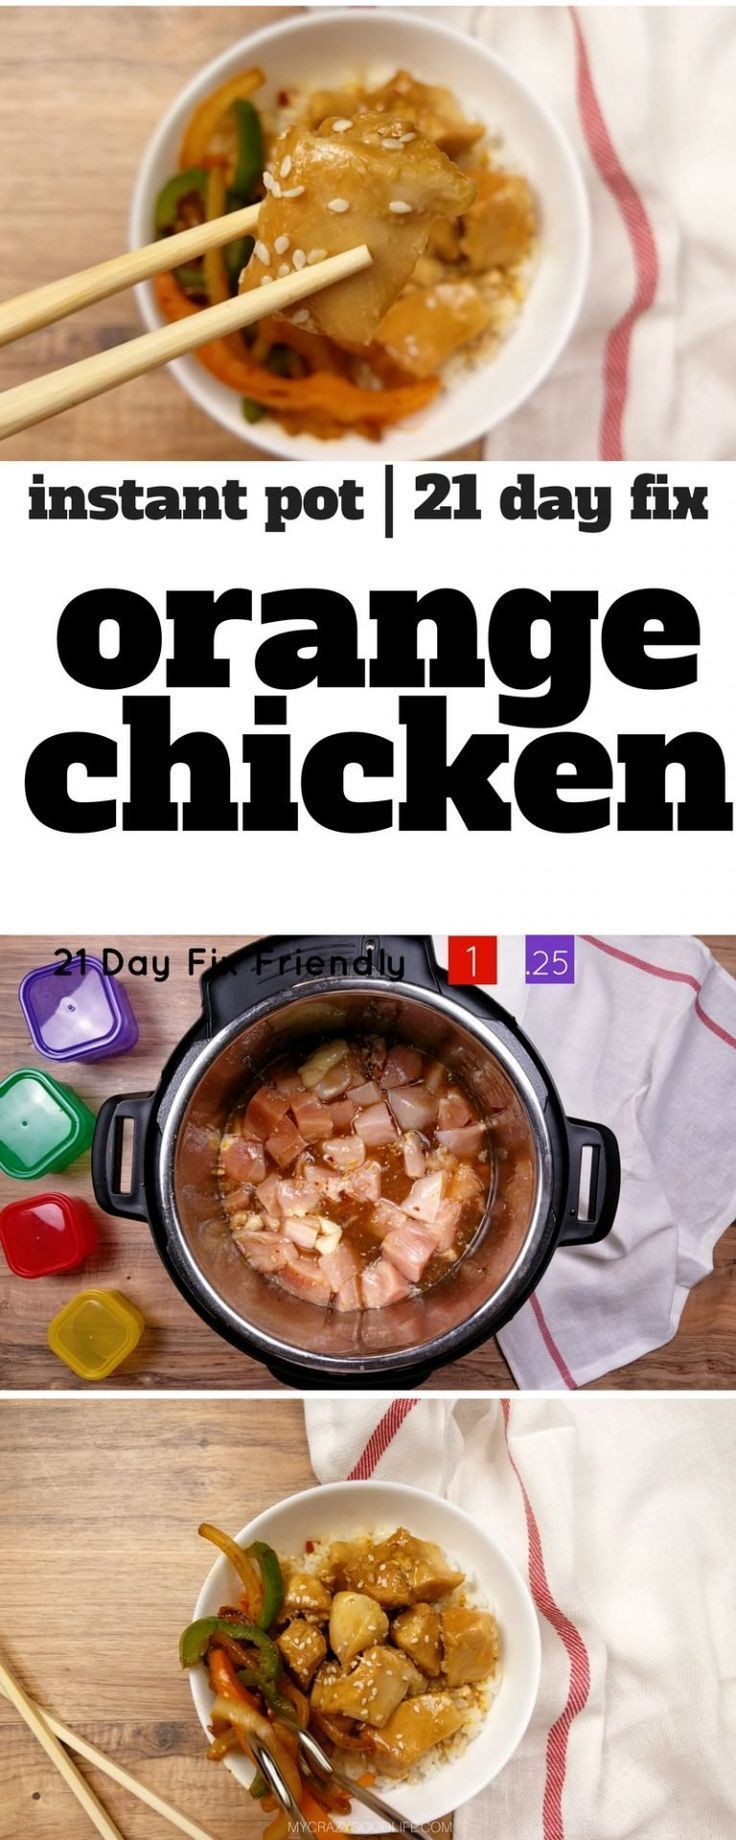 Get your chinese food fix with this instant pot orange chicken get your chinese food fix with this instant pot orange chicken recipe 21 day fix orange chicken with container counts good healthy meals 21 day fix forumfinder Gallery